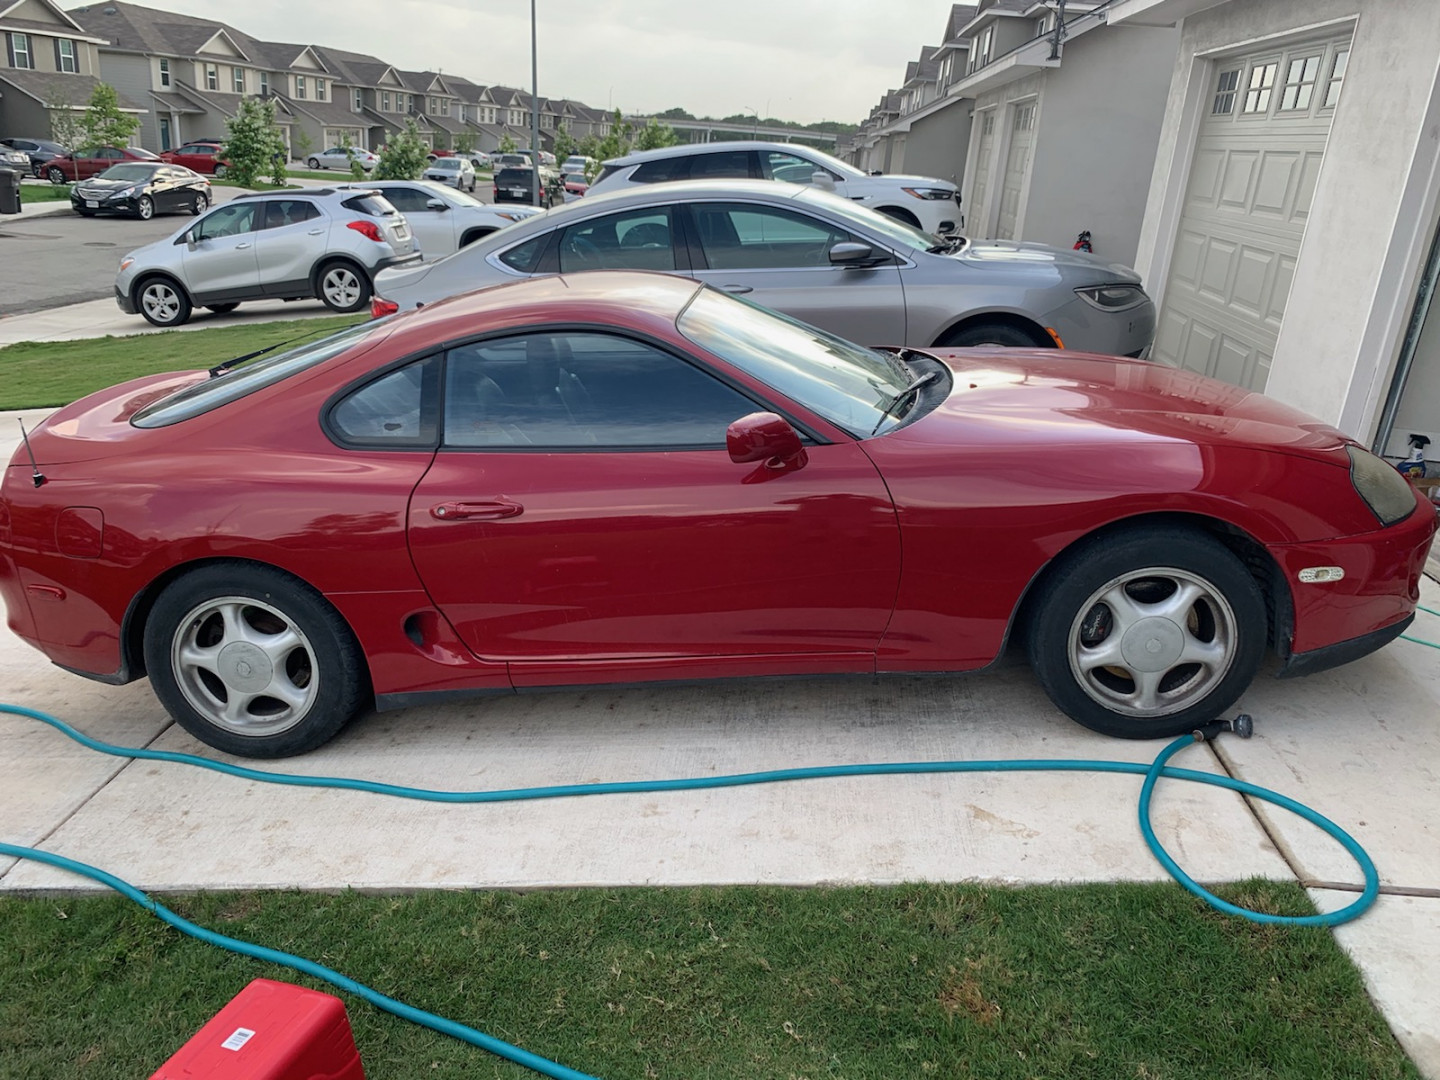 1995 2jzge supra mark iv workshop manual